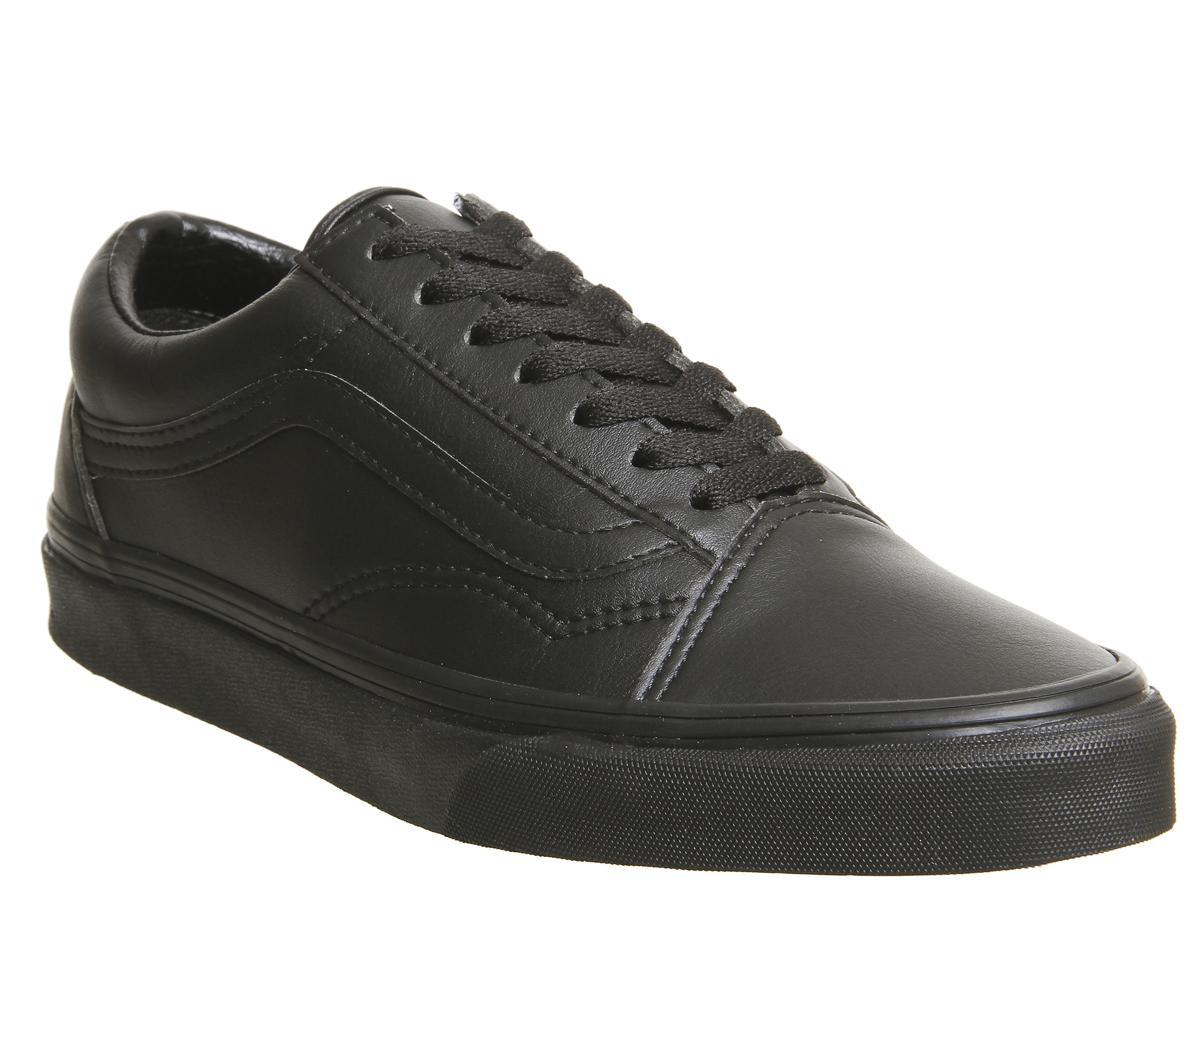 37827879a33521 Vans Old Skool Trainers Black Black Mono Leather - Unisex Sports